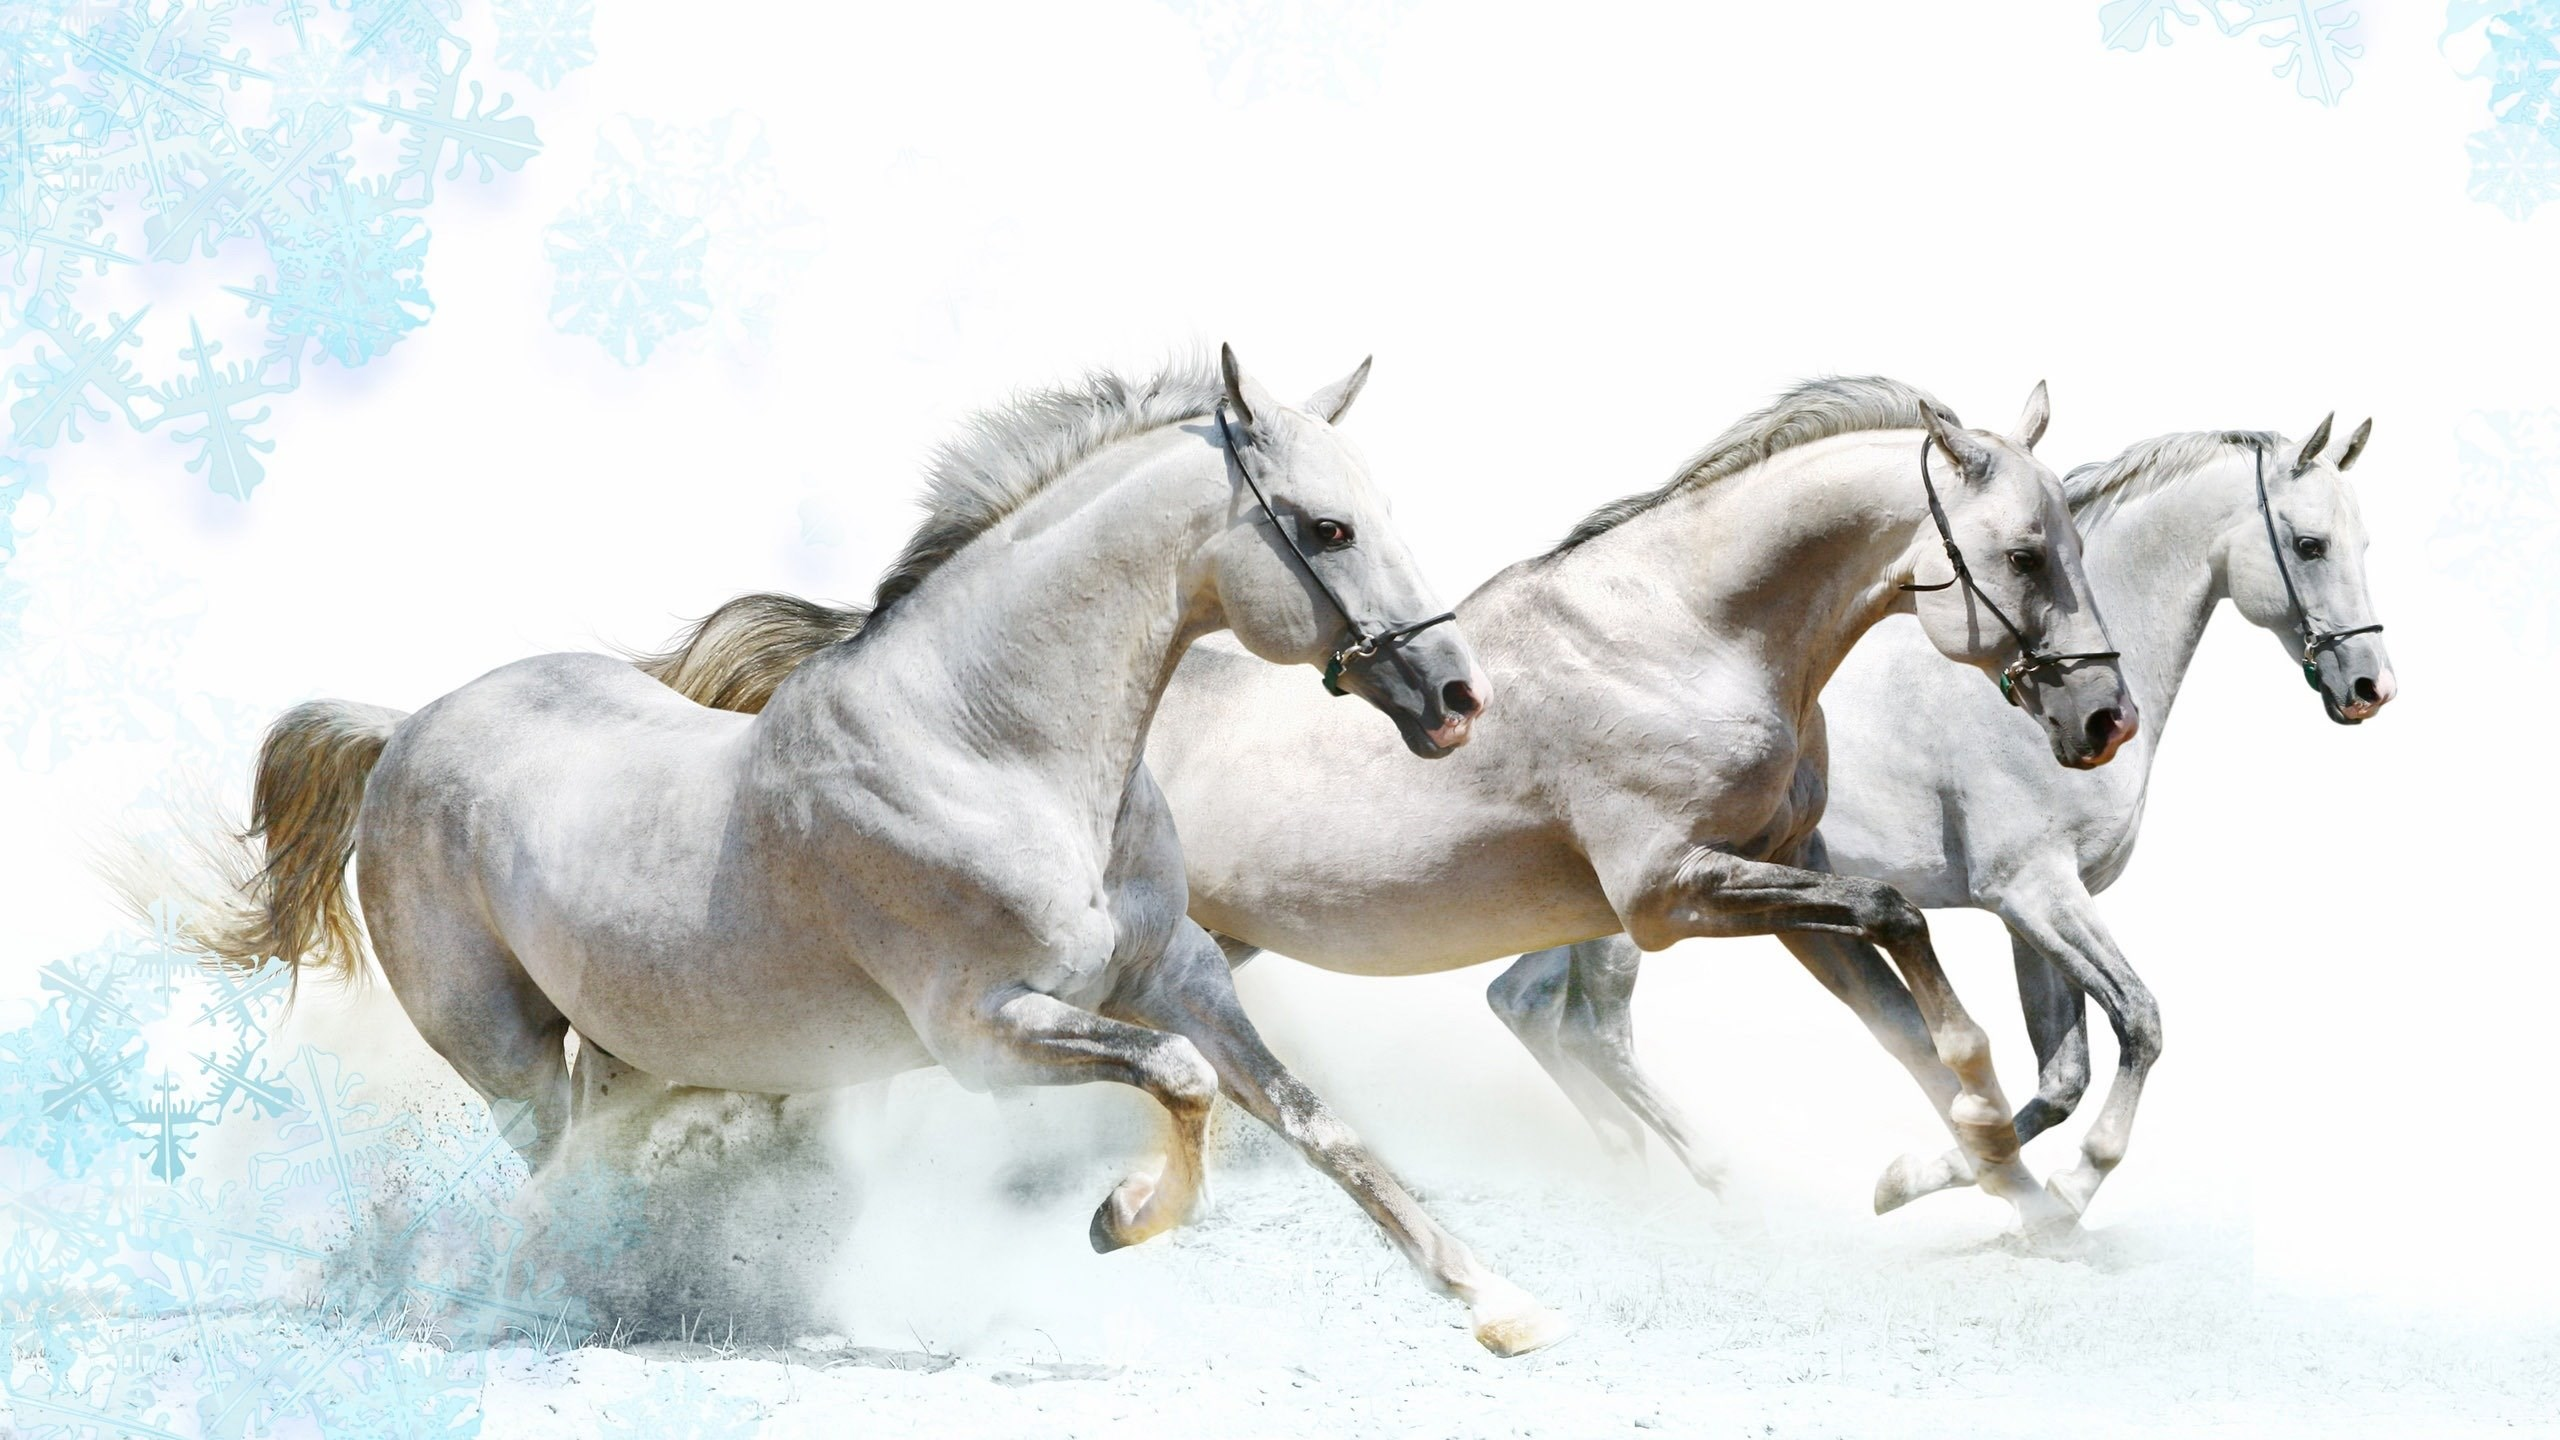 High resolution beautiful animal white horses wallpapers hd 10 netbook voltagebd Image collections